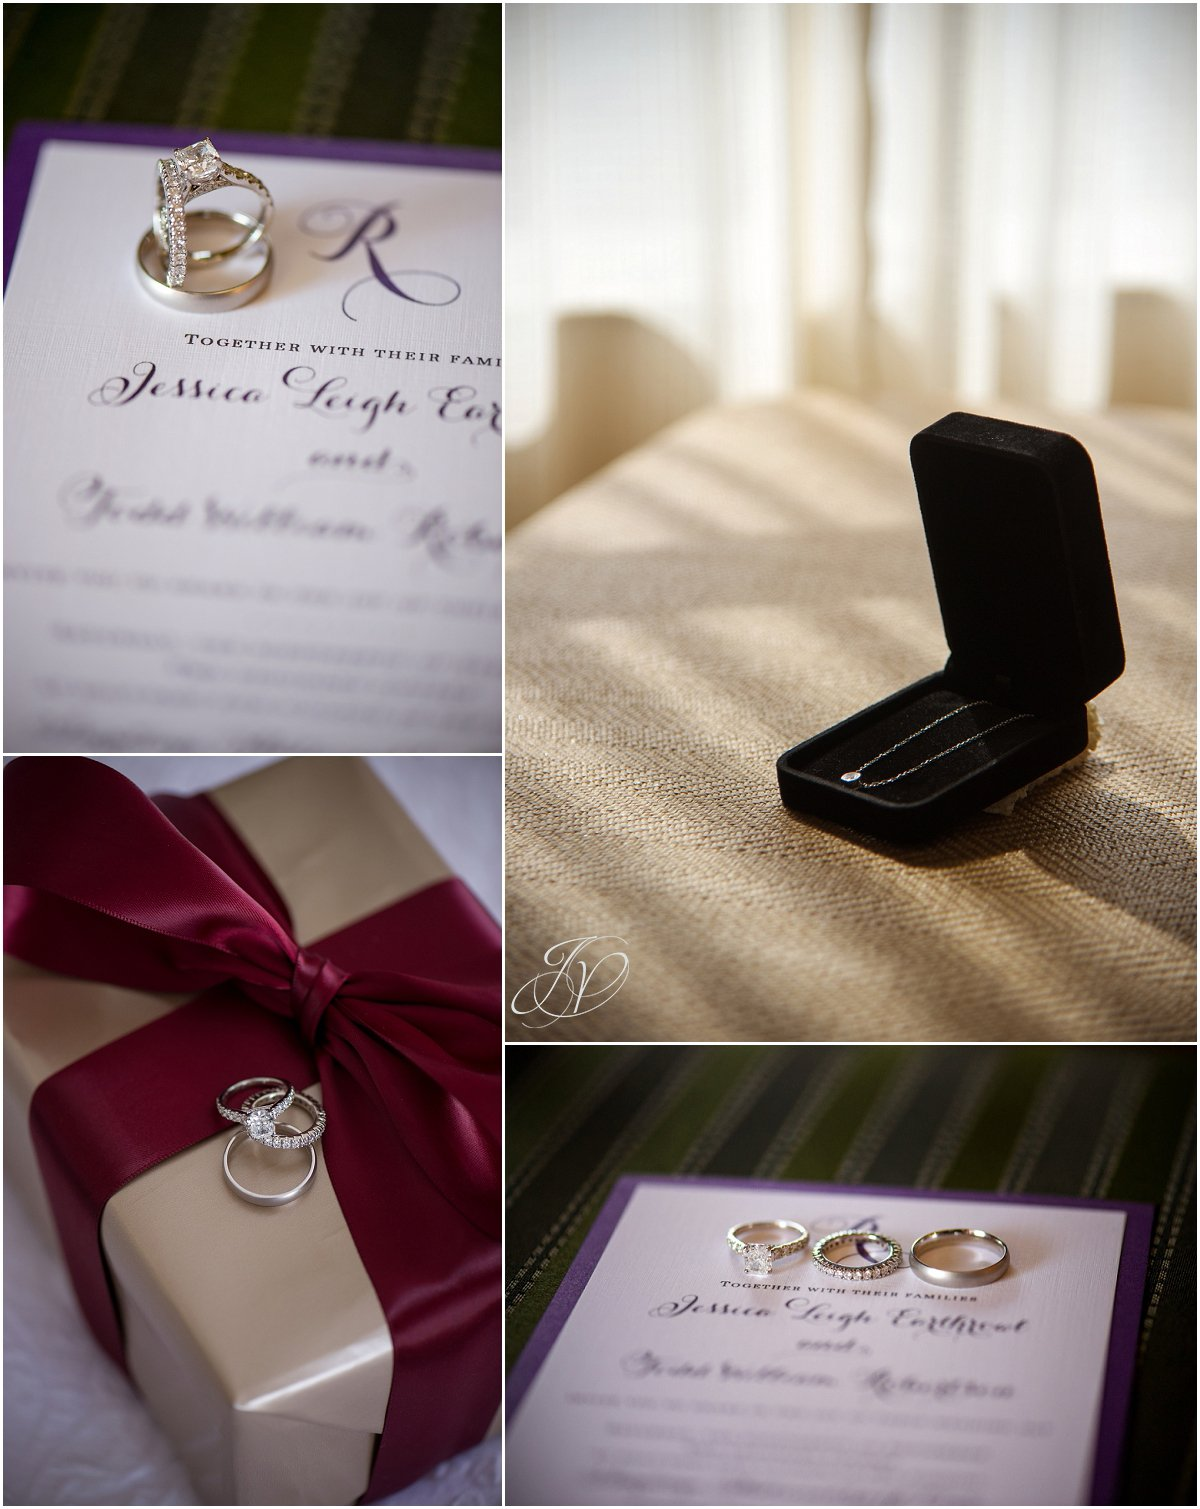 wedding ring details wedding invitation